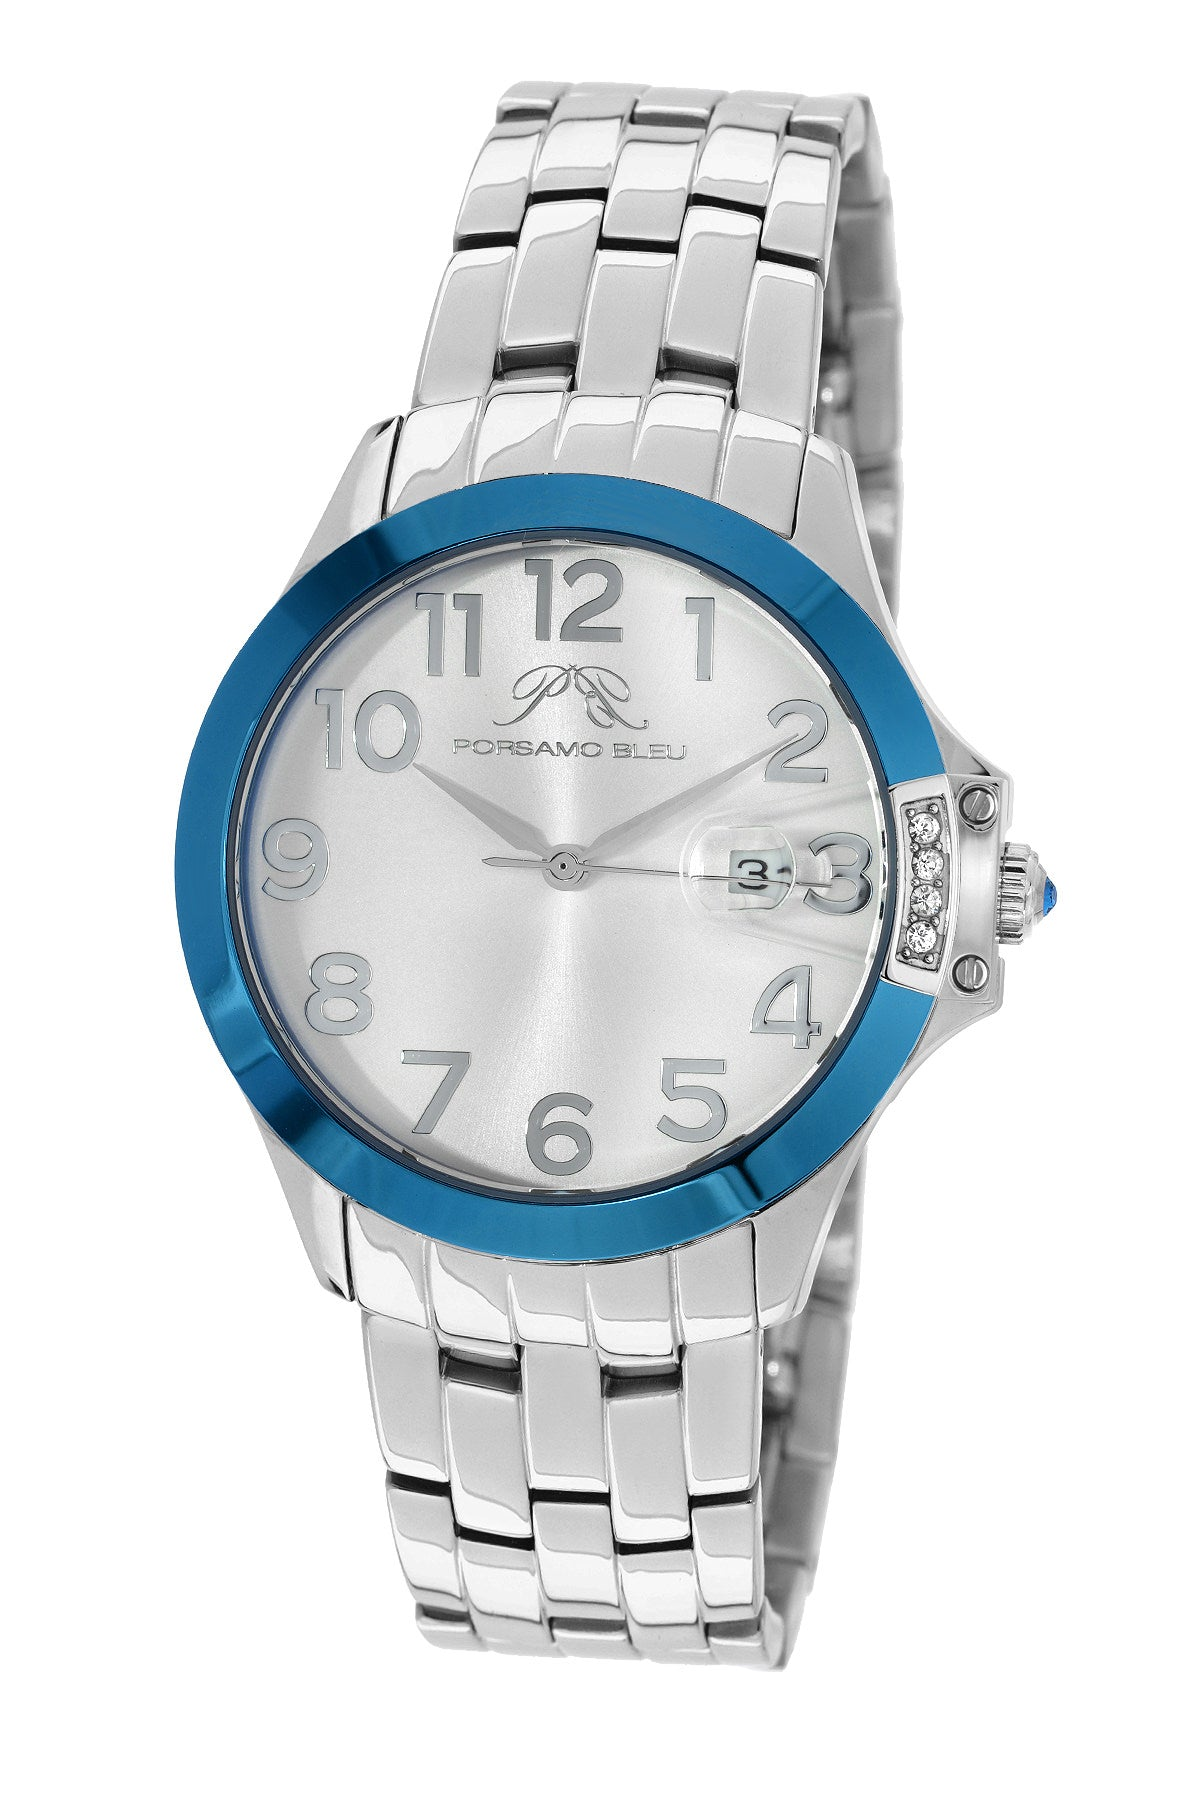 Porsamo Bleu Olivia luxury women's stainless steel watch, silver, blue 982AOLS